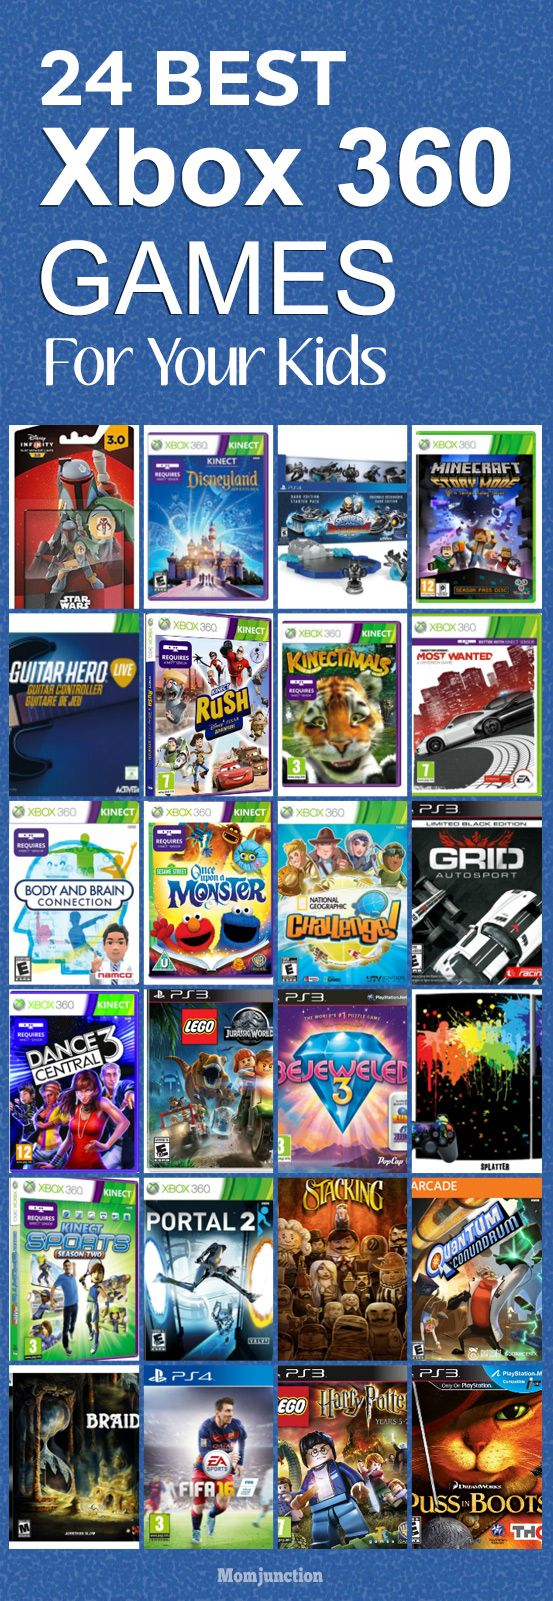 Top Xbox 360 Games : Best xbox games for kids ideas on pinterest man cave